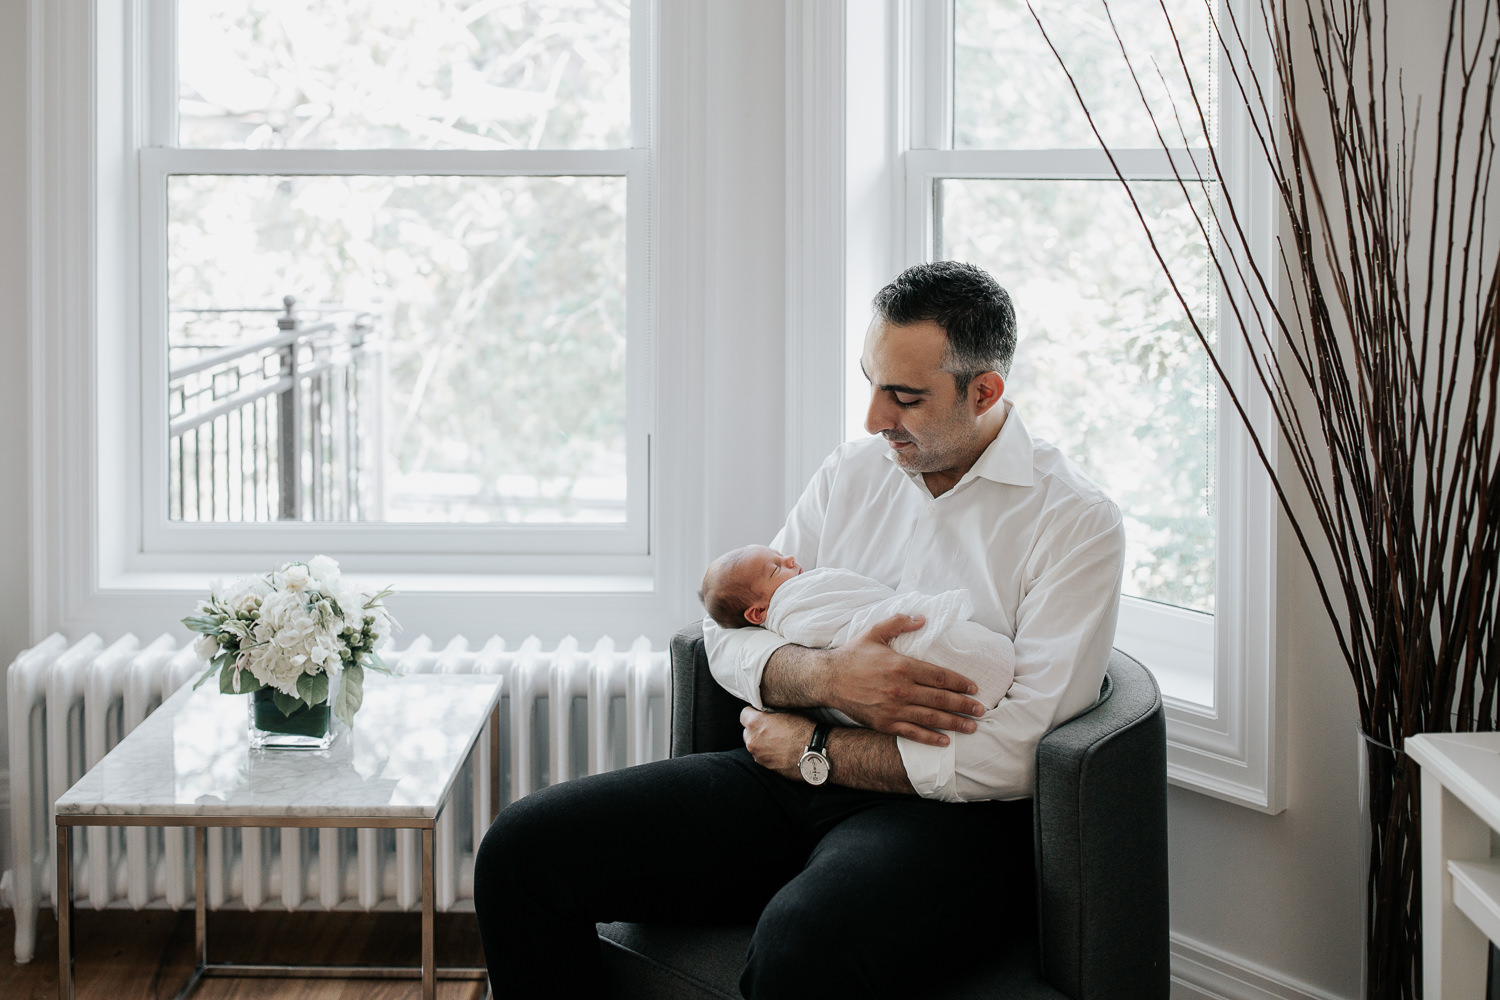 new father sitting in chair in living room, holding sleeping, swaddled 2 week old baby boy in his arms, smiling at son - Markham Lifestyle Photography